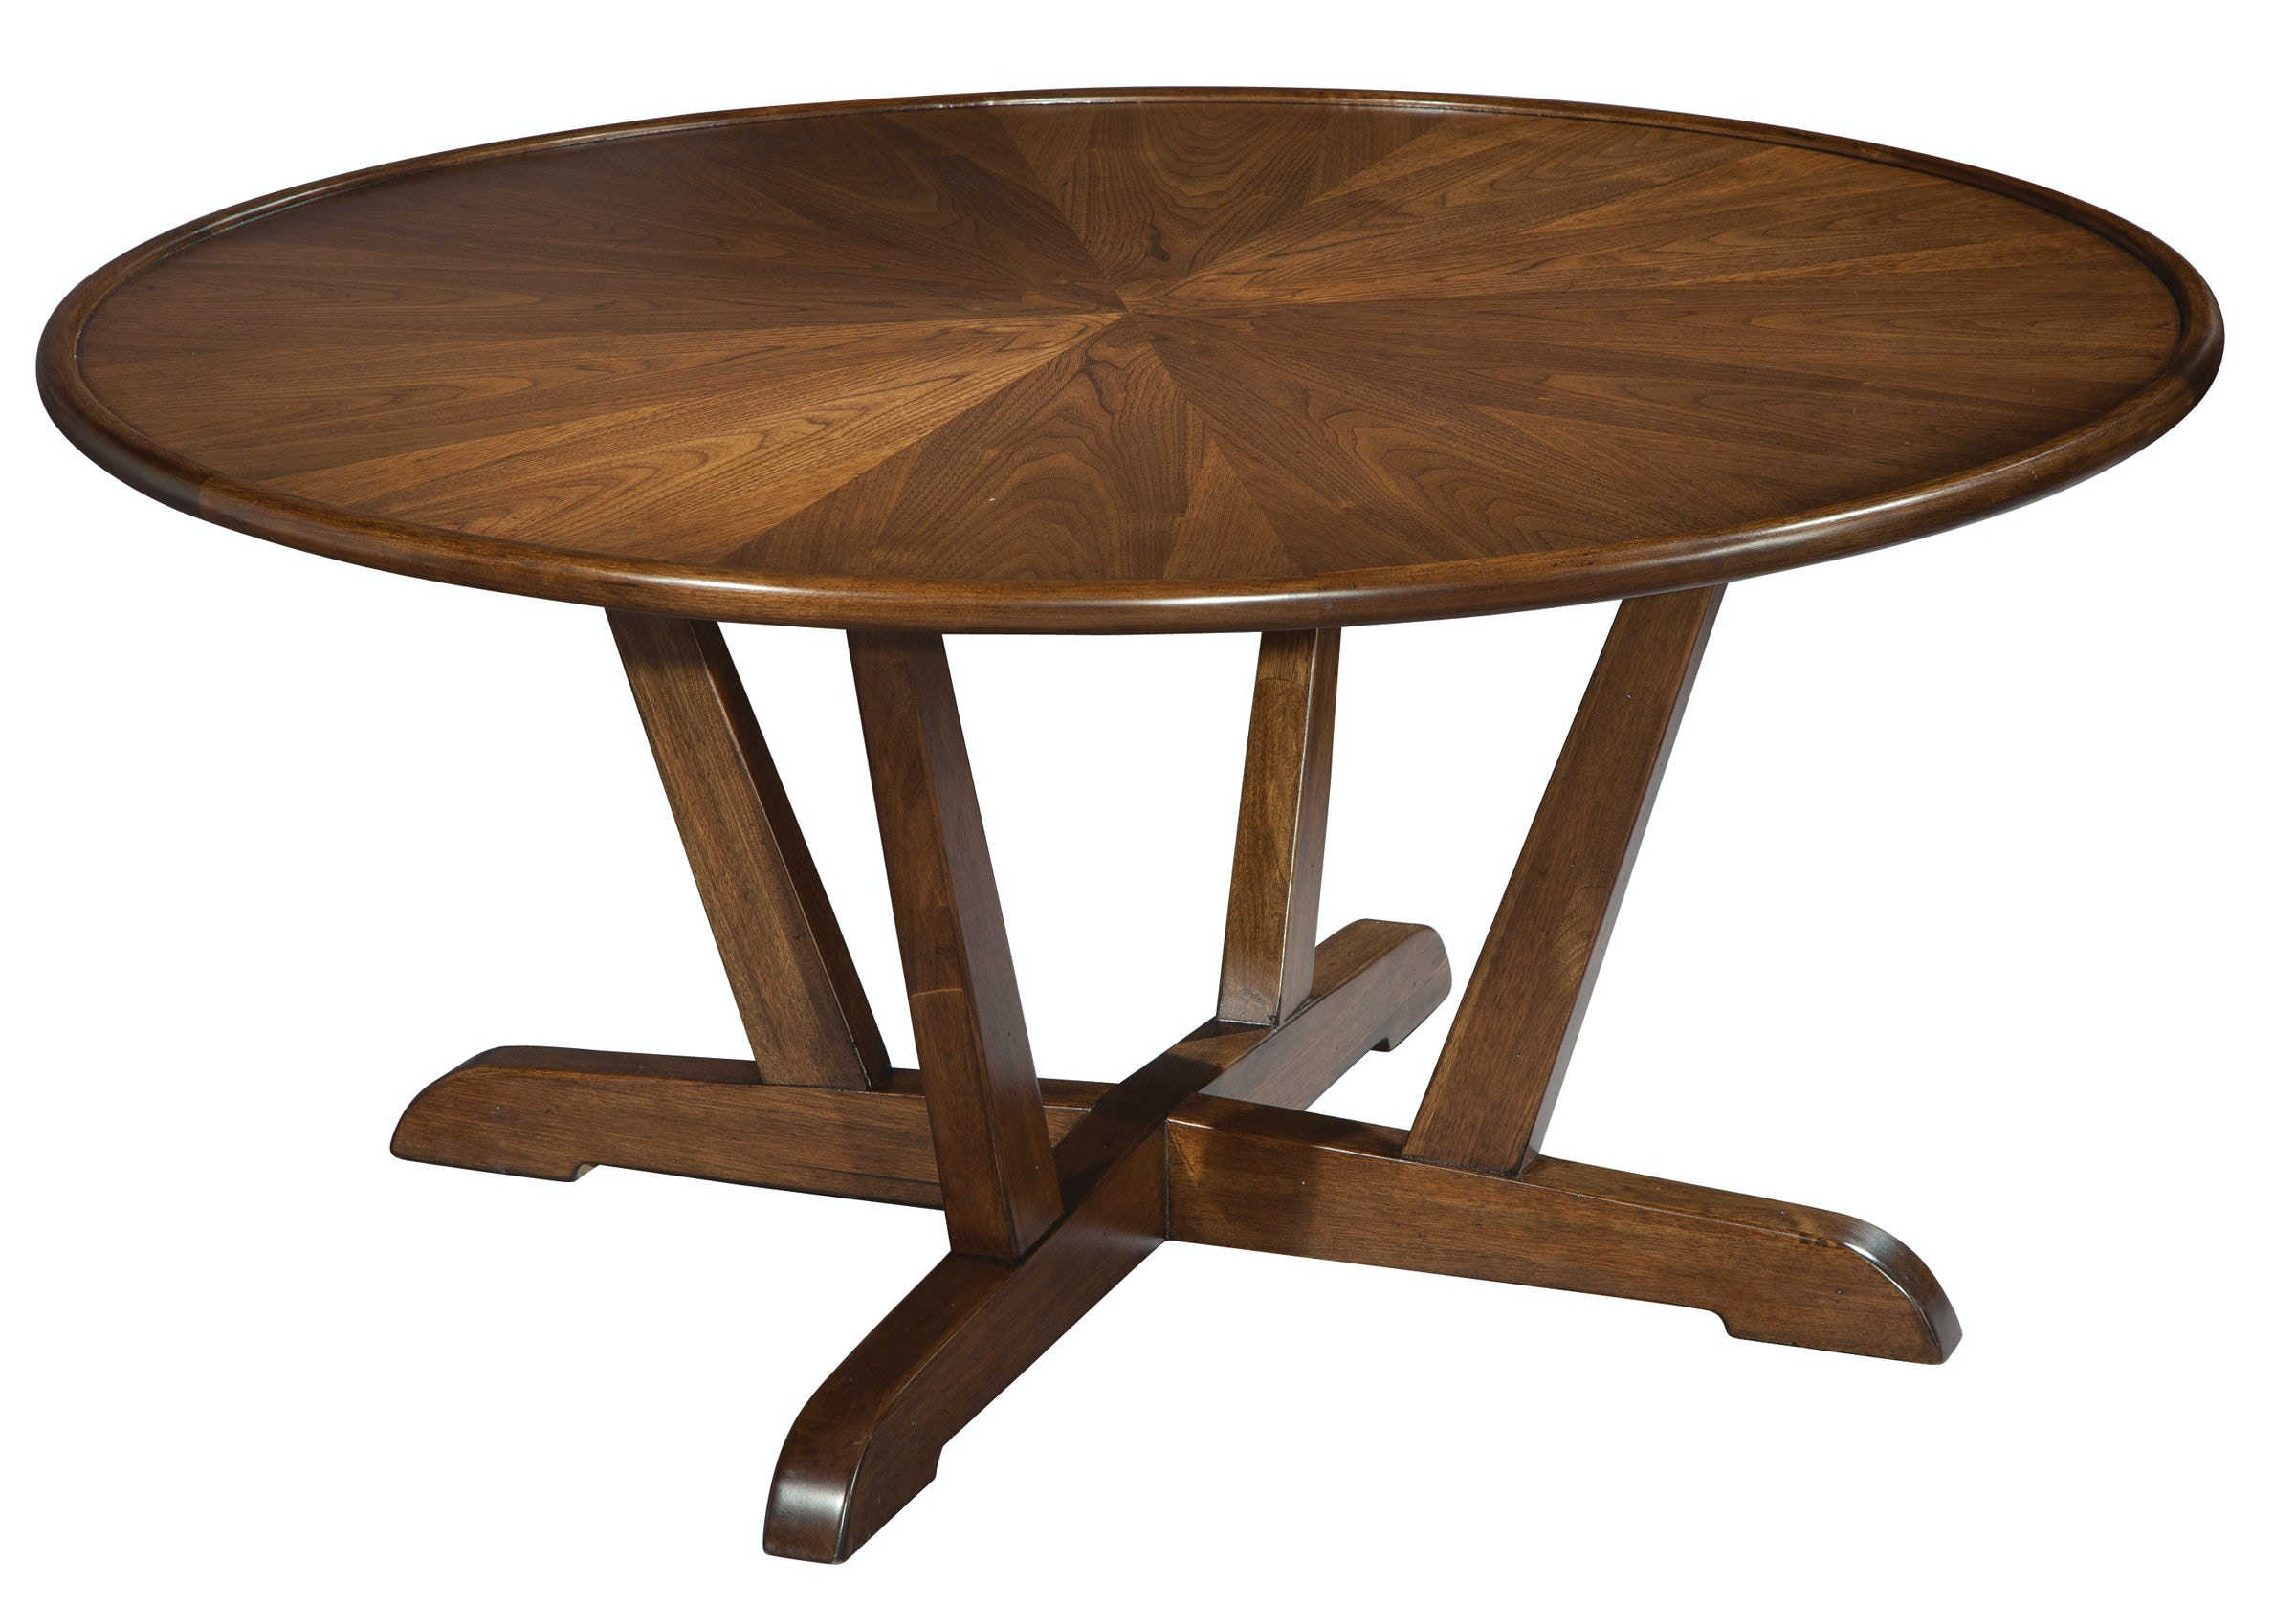 951302mw - Hekman Furniture